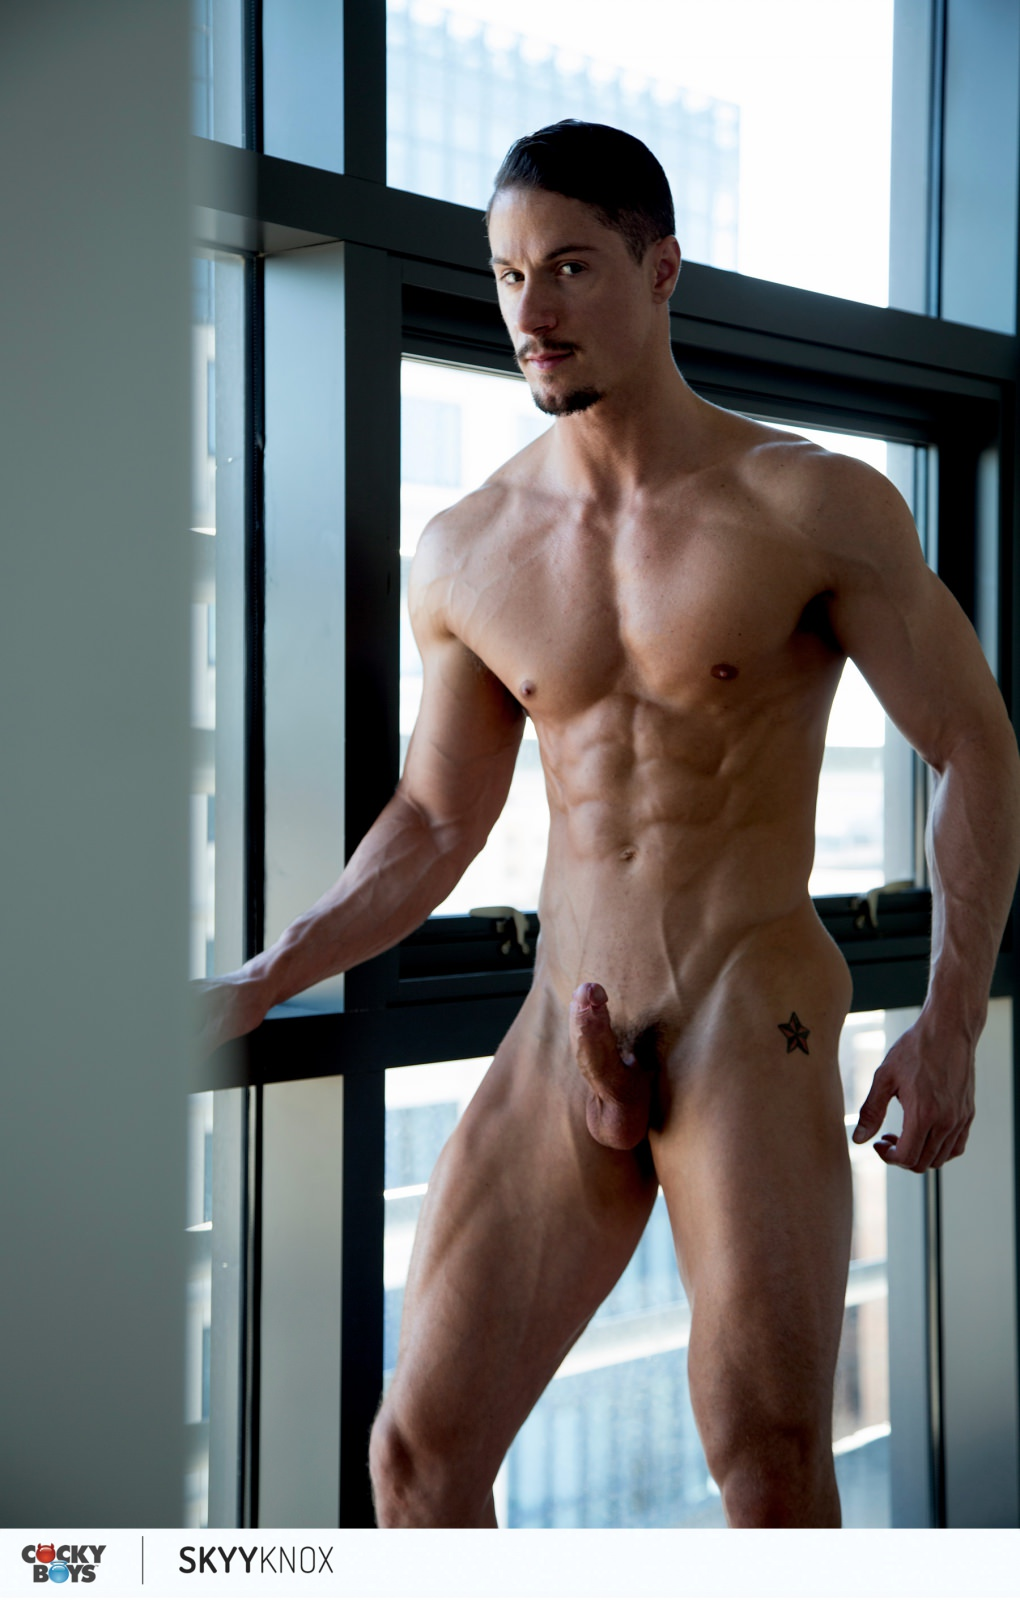 Blog For Gay Adults